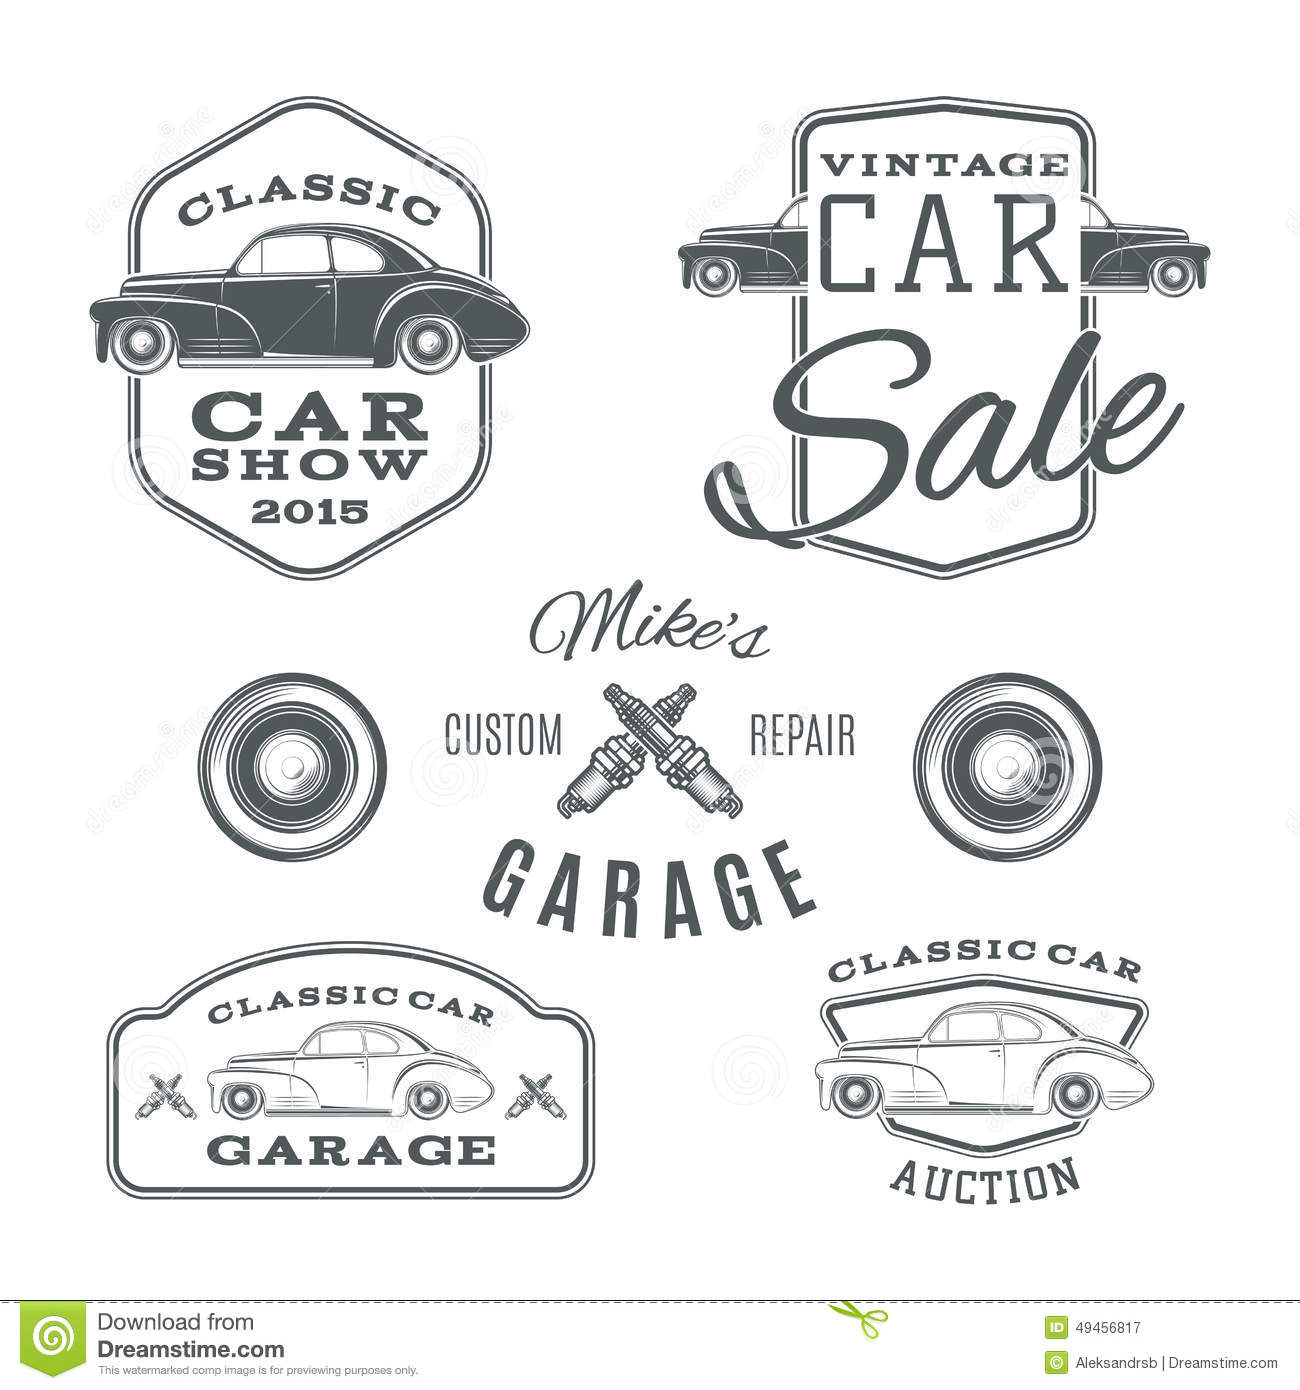 Stock Illustration Set Vintage Classic Car Services Labels Isolated White Background Logos Vector Illustration Image49456817 on sports car illustration